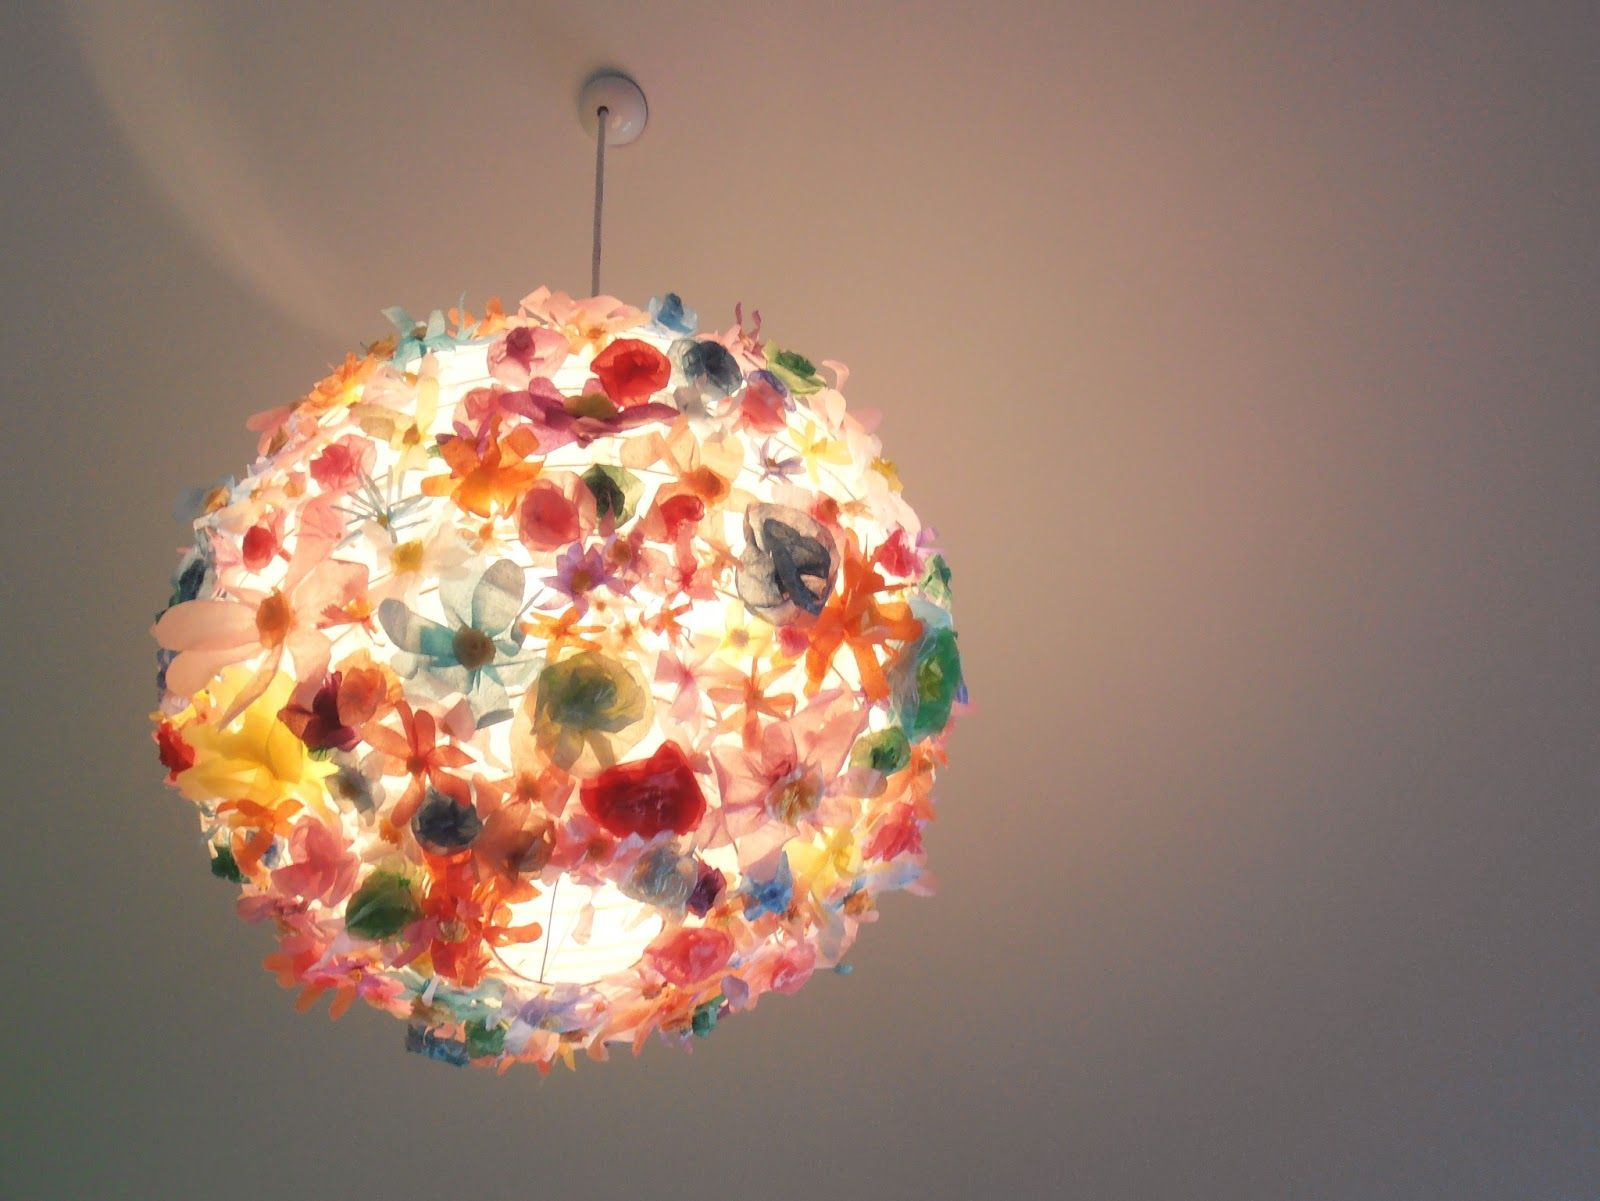 Thimble diy floral lampshade lighting fascination pinterest thimble diy floral lampshade mightylinksfo Gallery